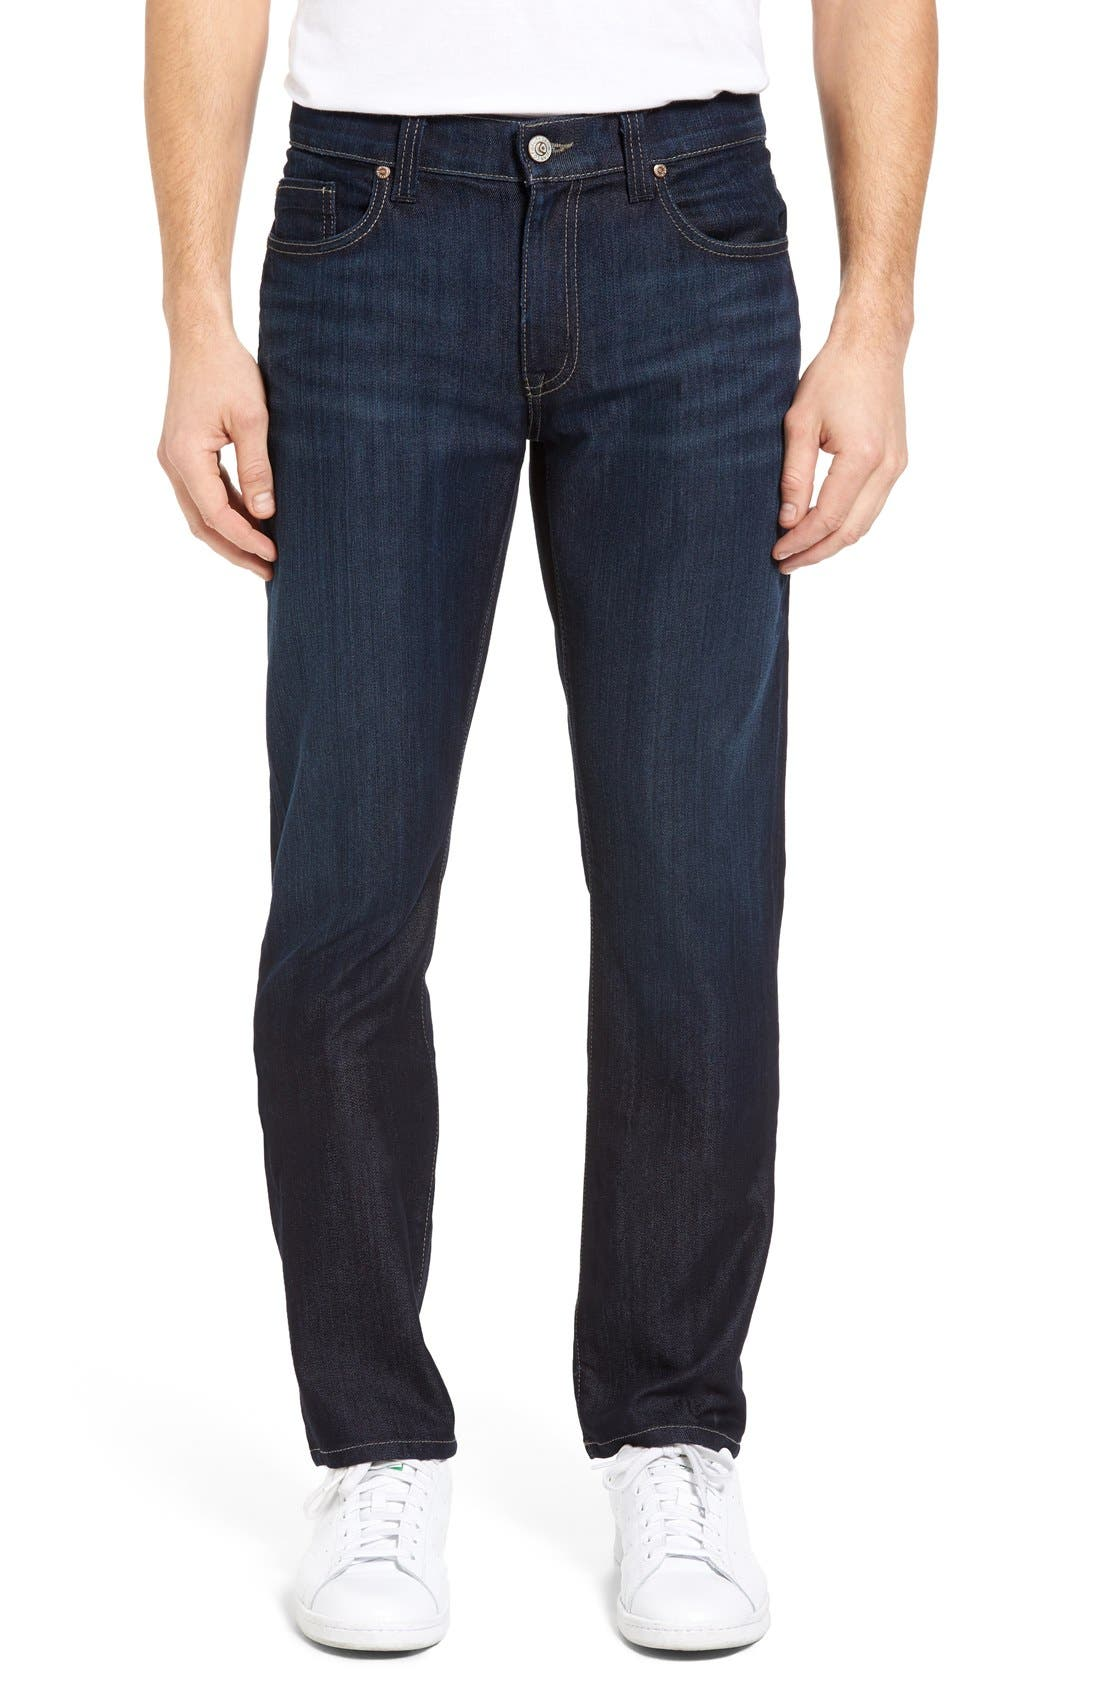 Impala Straight Leg Jeans,                         Main,                         color, Lunar Blue